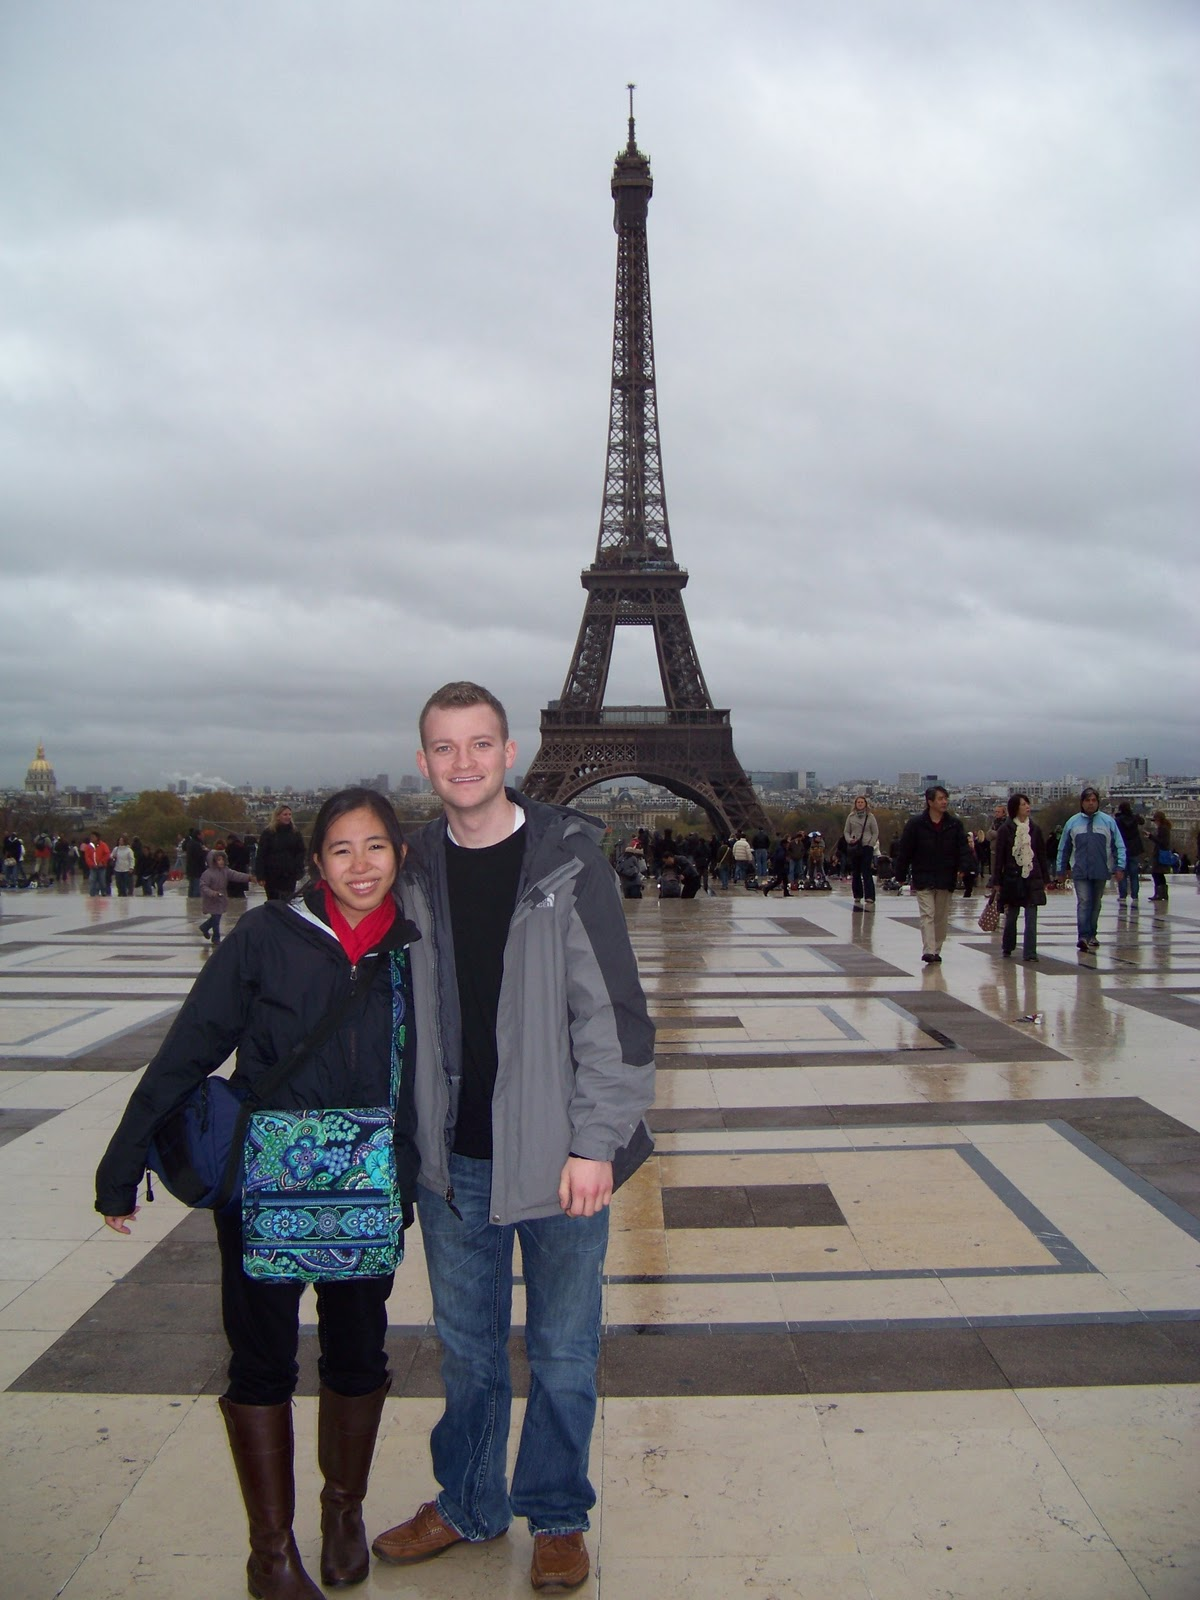 Rue Mcclanahan Casket Kelsey and i in front of the eifel towerRue Mcclanahan Casket